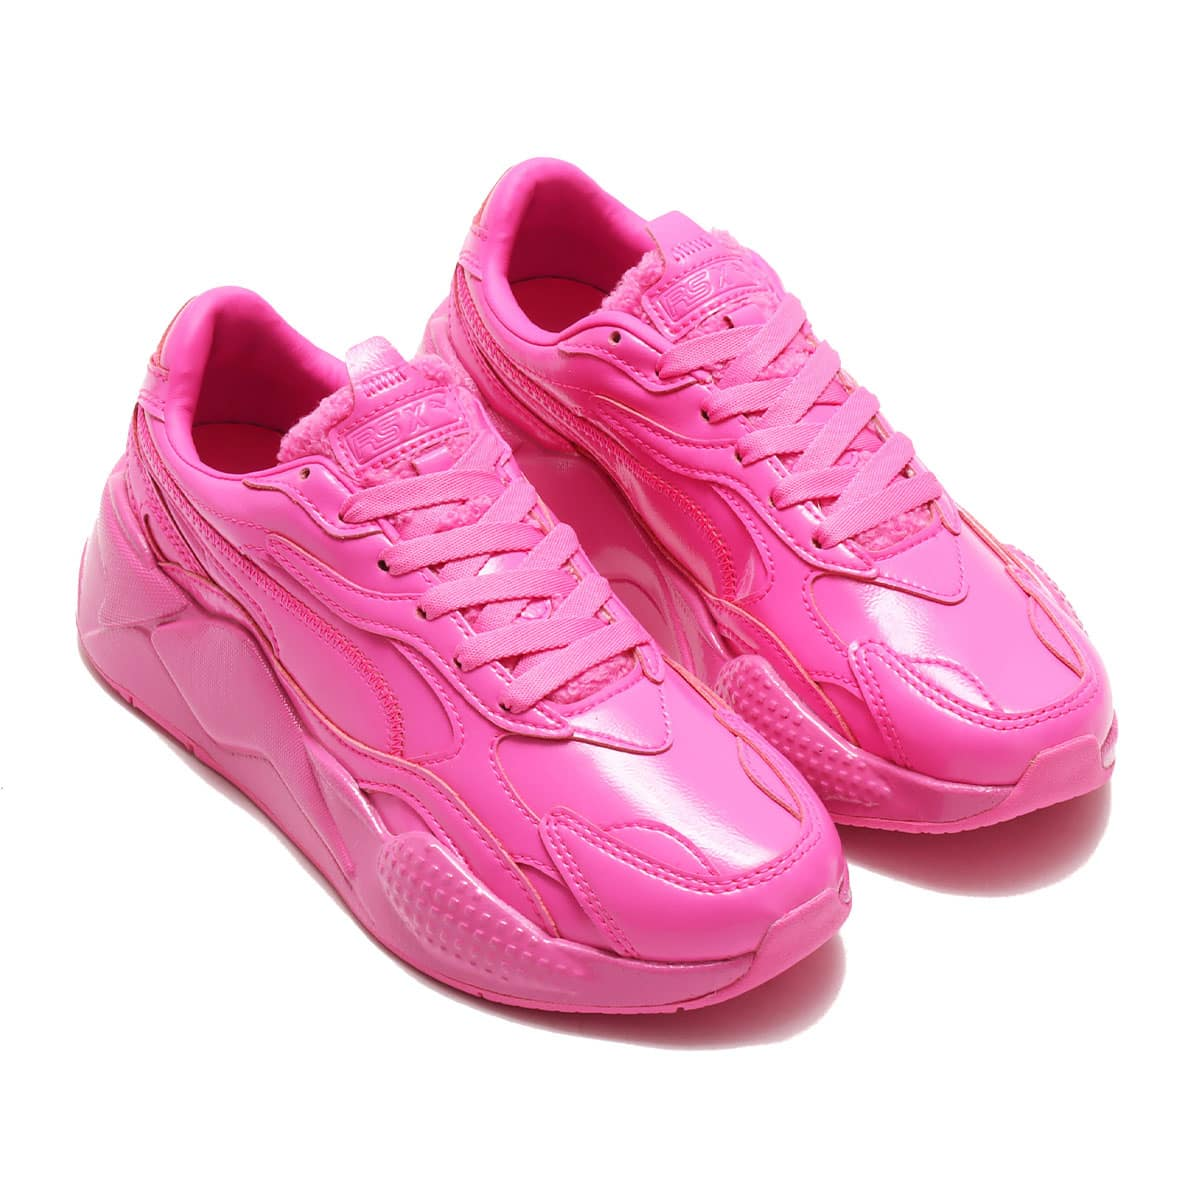 PUMA RS-X3 PP WNS PINK 20FA-S_photo_large